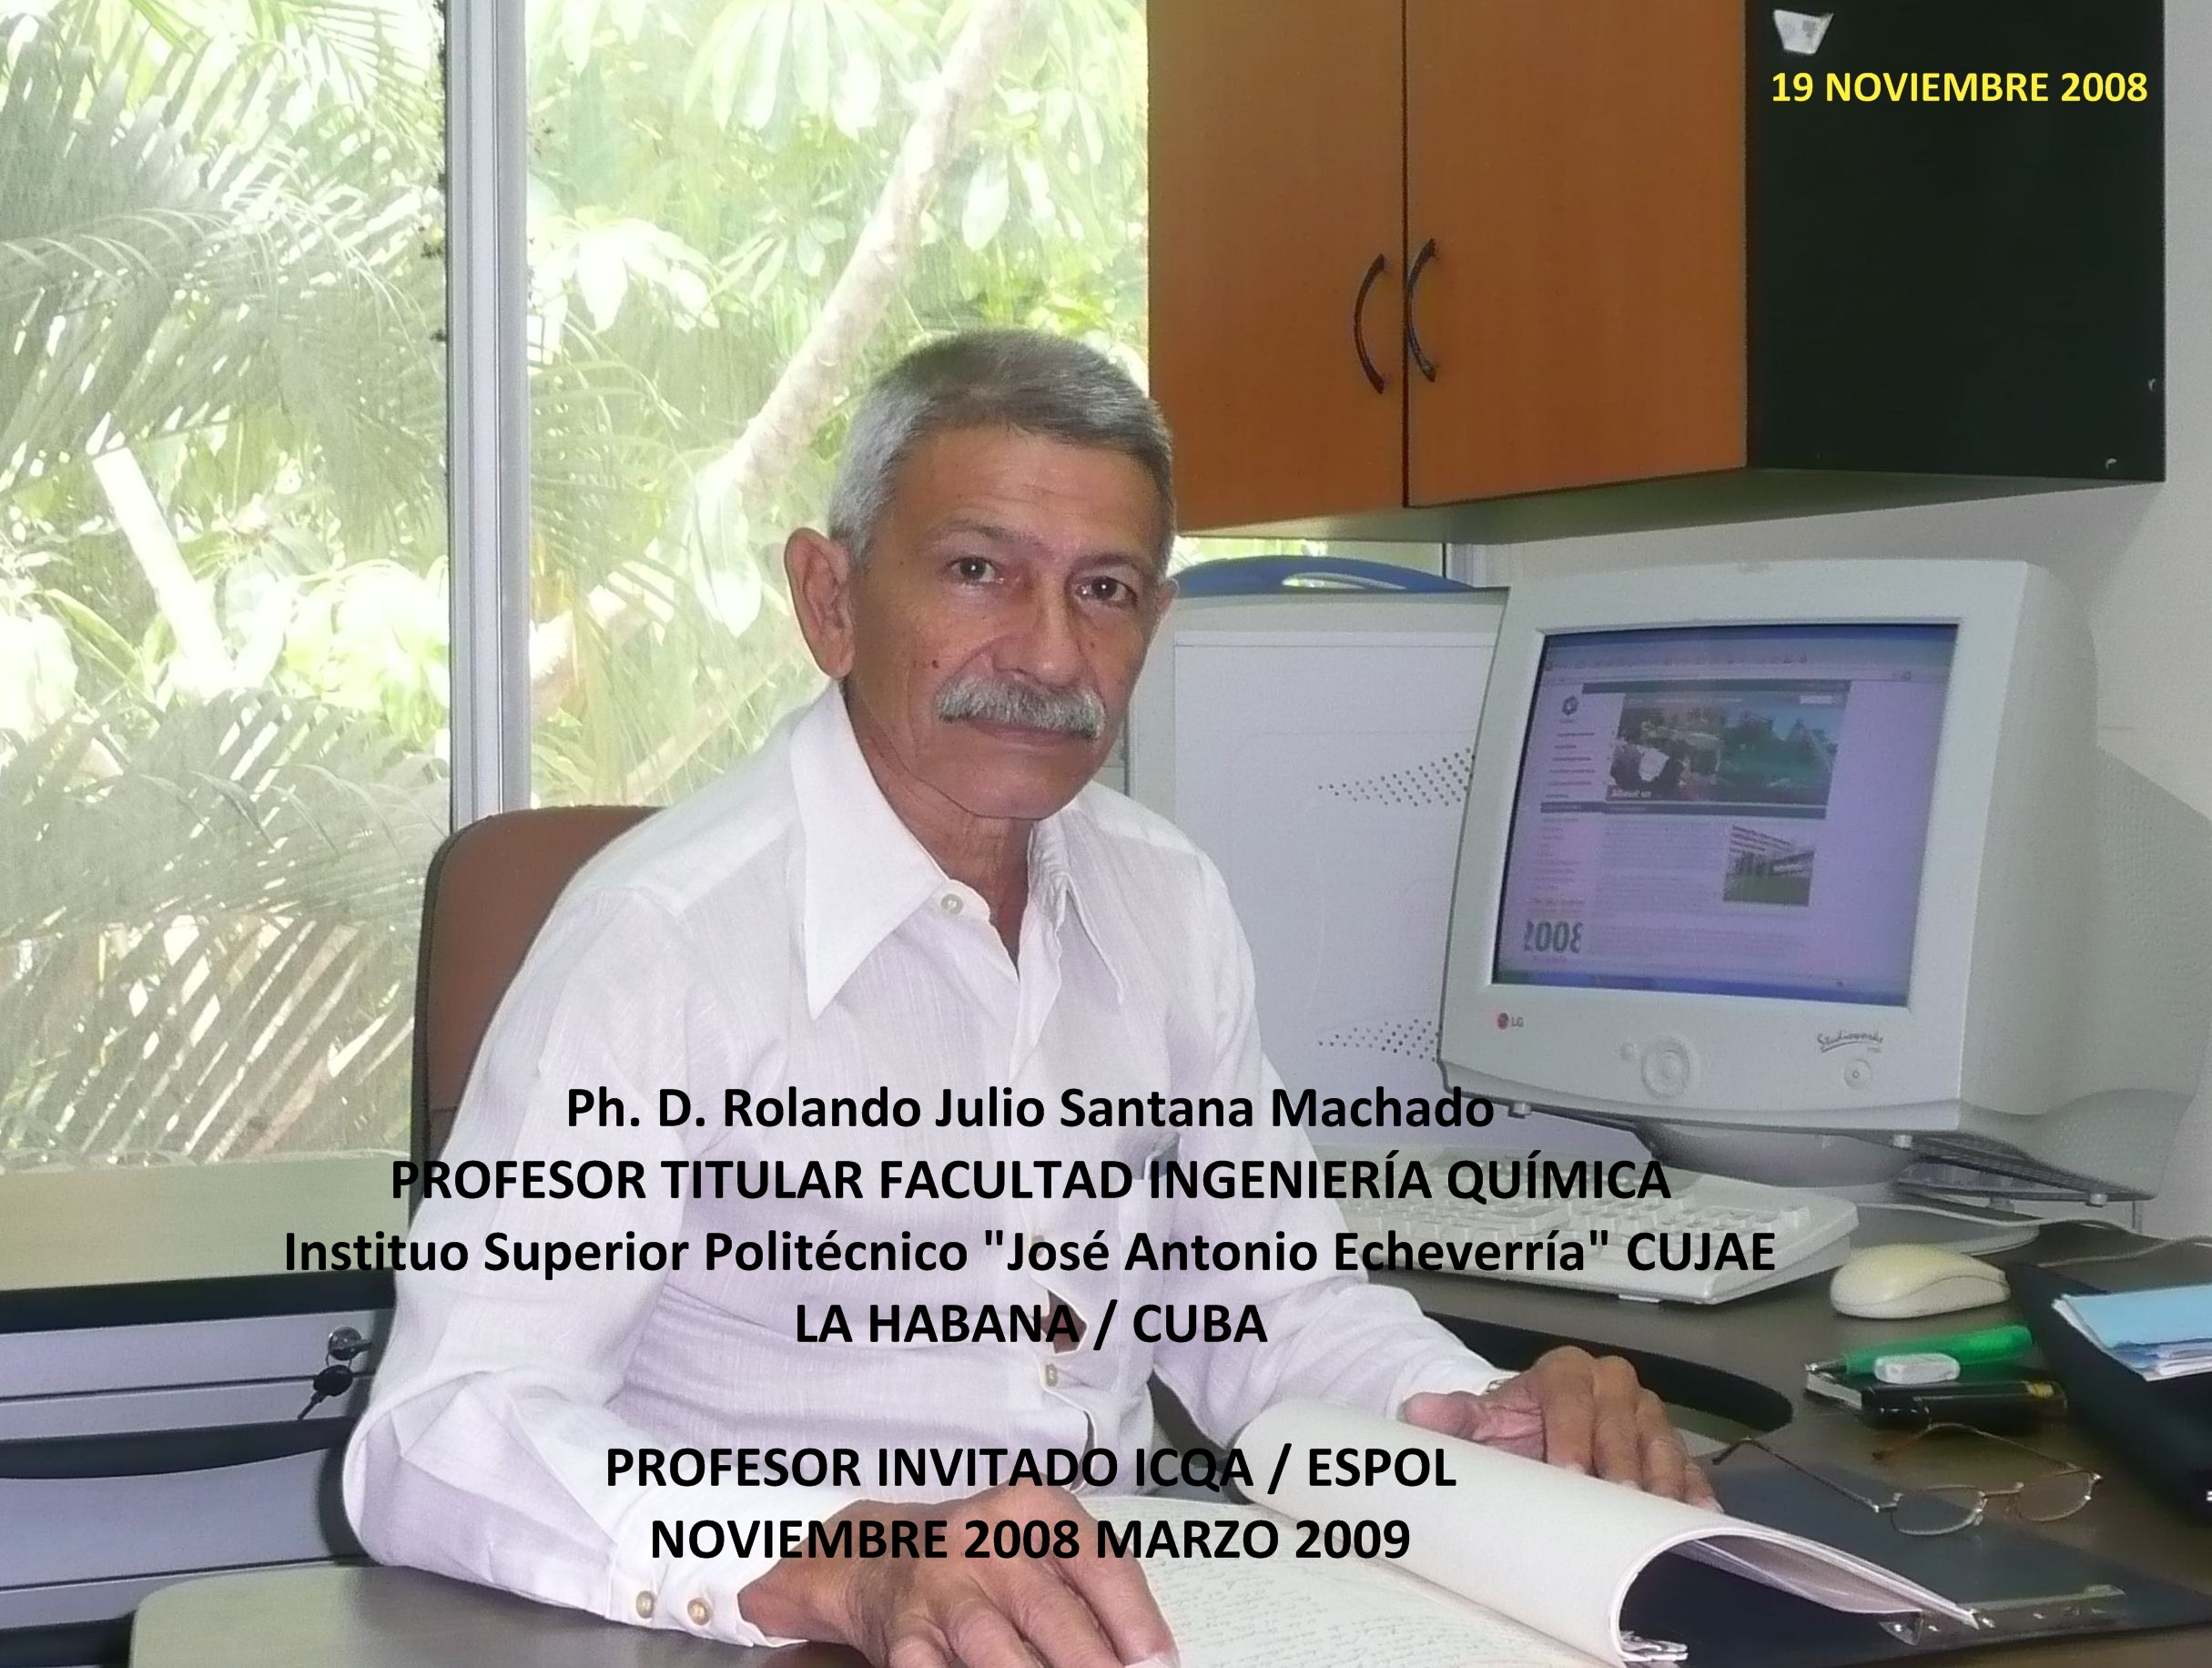 Ph. D. Rolando Julio Santana Machado PROFESOR INVITADO ICQA / ESPOL